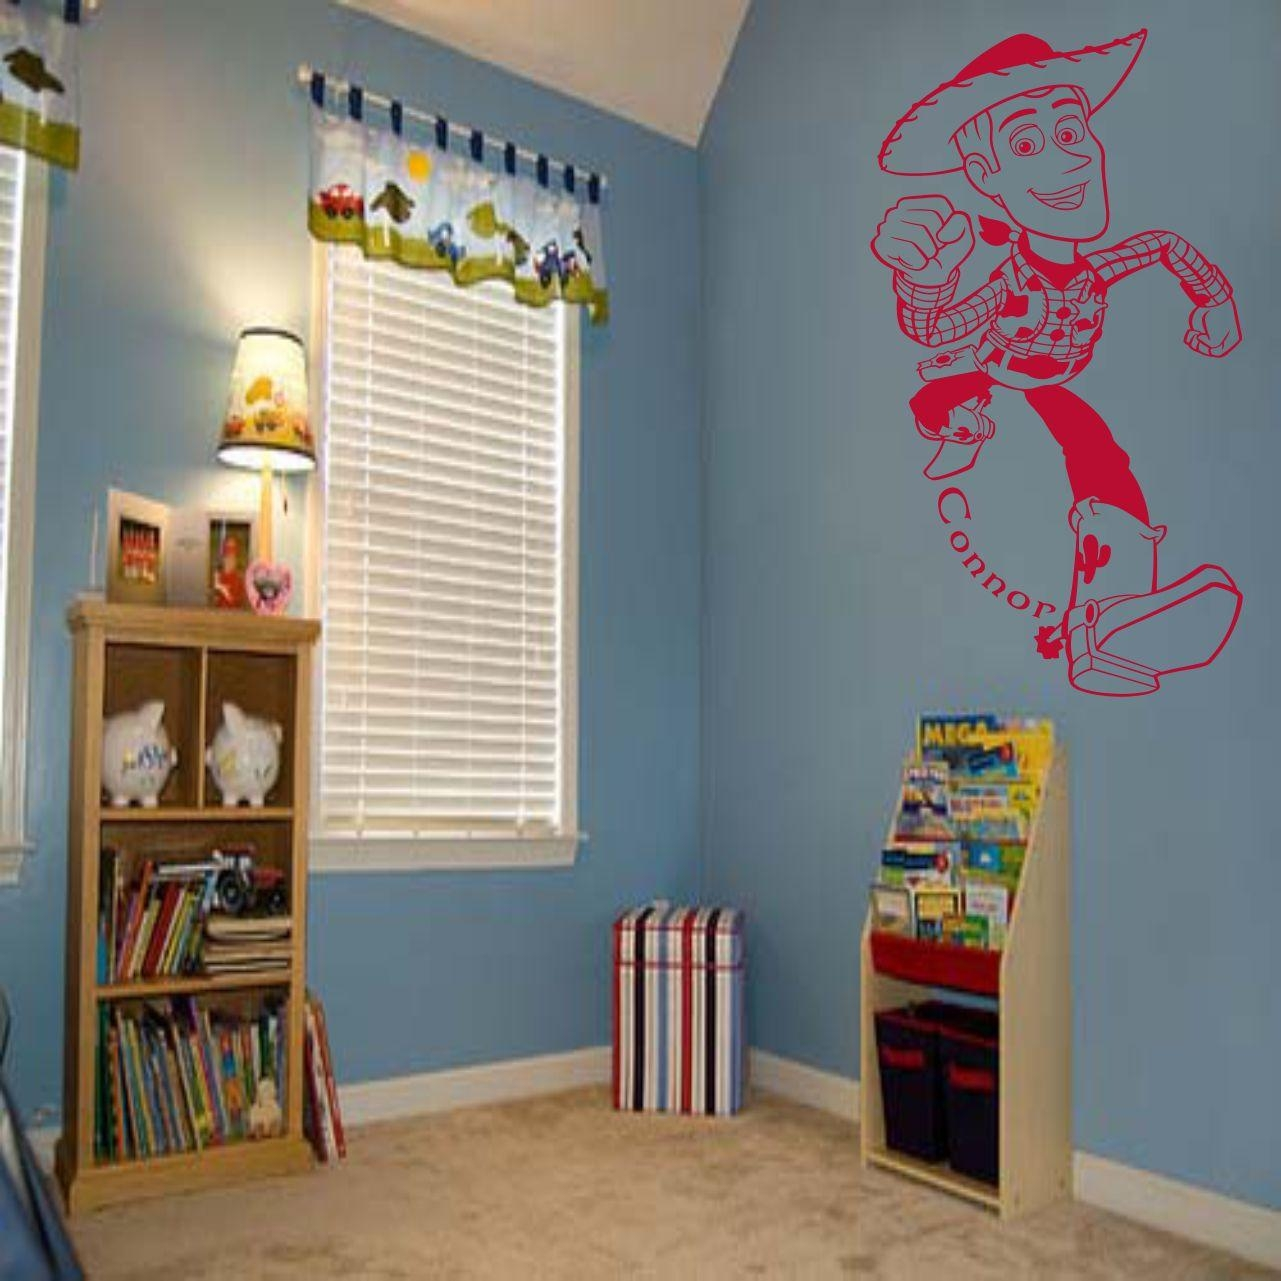 Fantastic Toy Story Woody Wall Art Decal Vinyl Sticker Wall For Toy Story Wall Stickers (View 14 of 20)